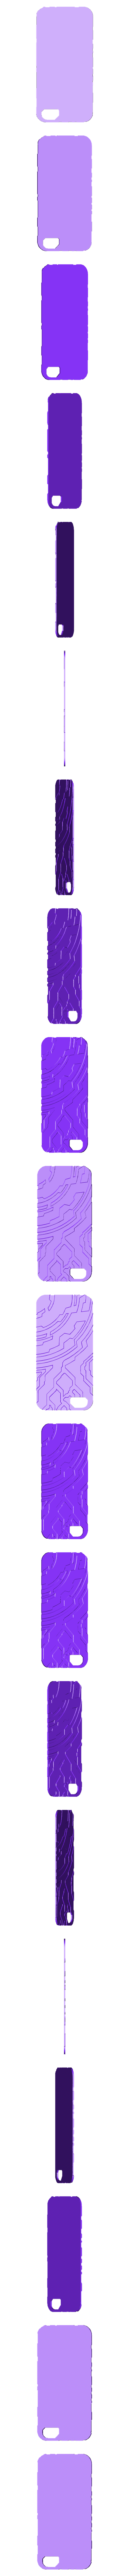 Halo_Case_Back_1_of_2.STL Download free STL file Halo themed Iphone 5 Case • 3D printer template, aevafortinhi